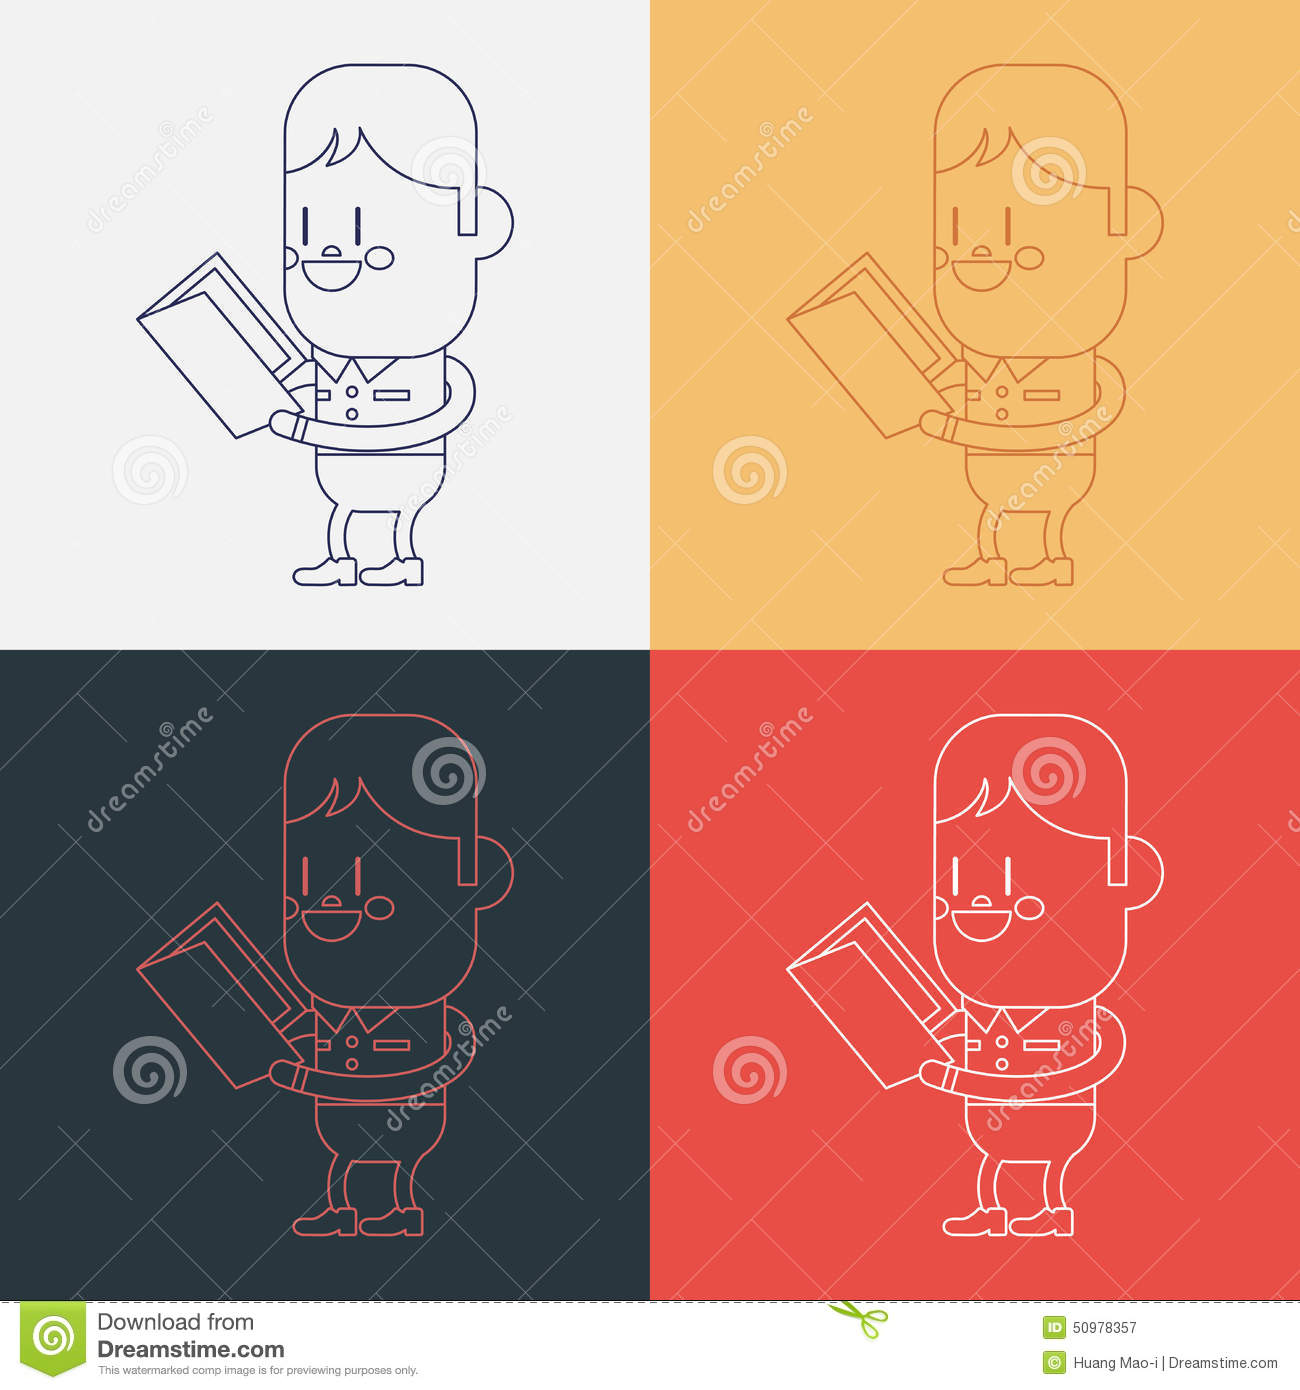 Character Design Course Description : Kid reading a book cartoon illustration royalty free